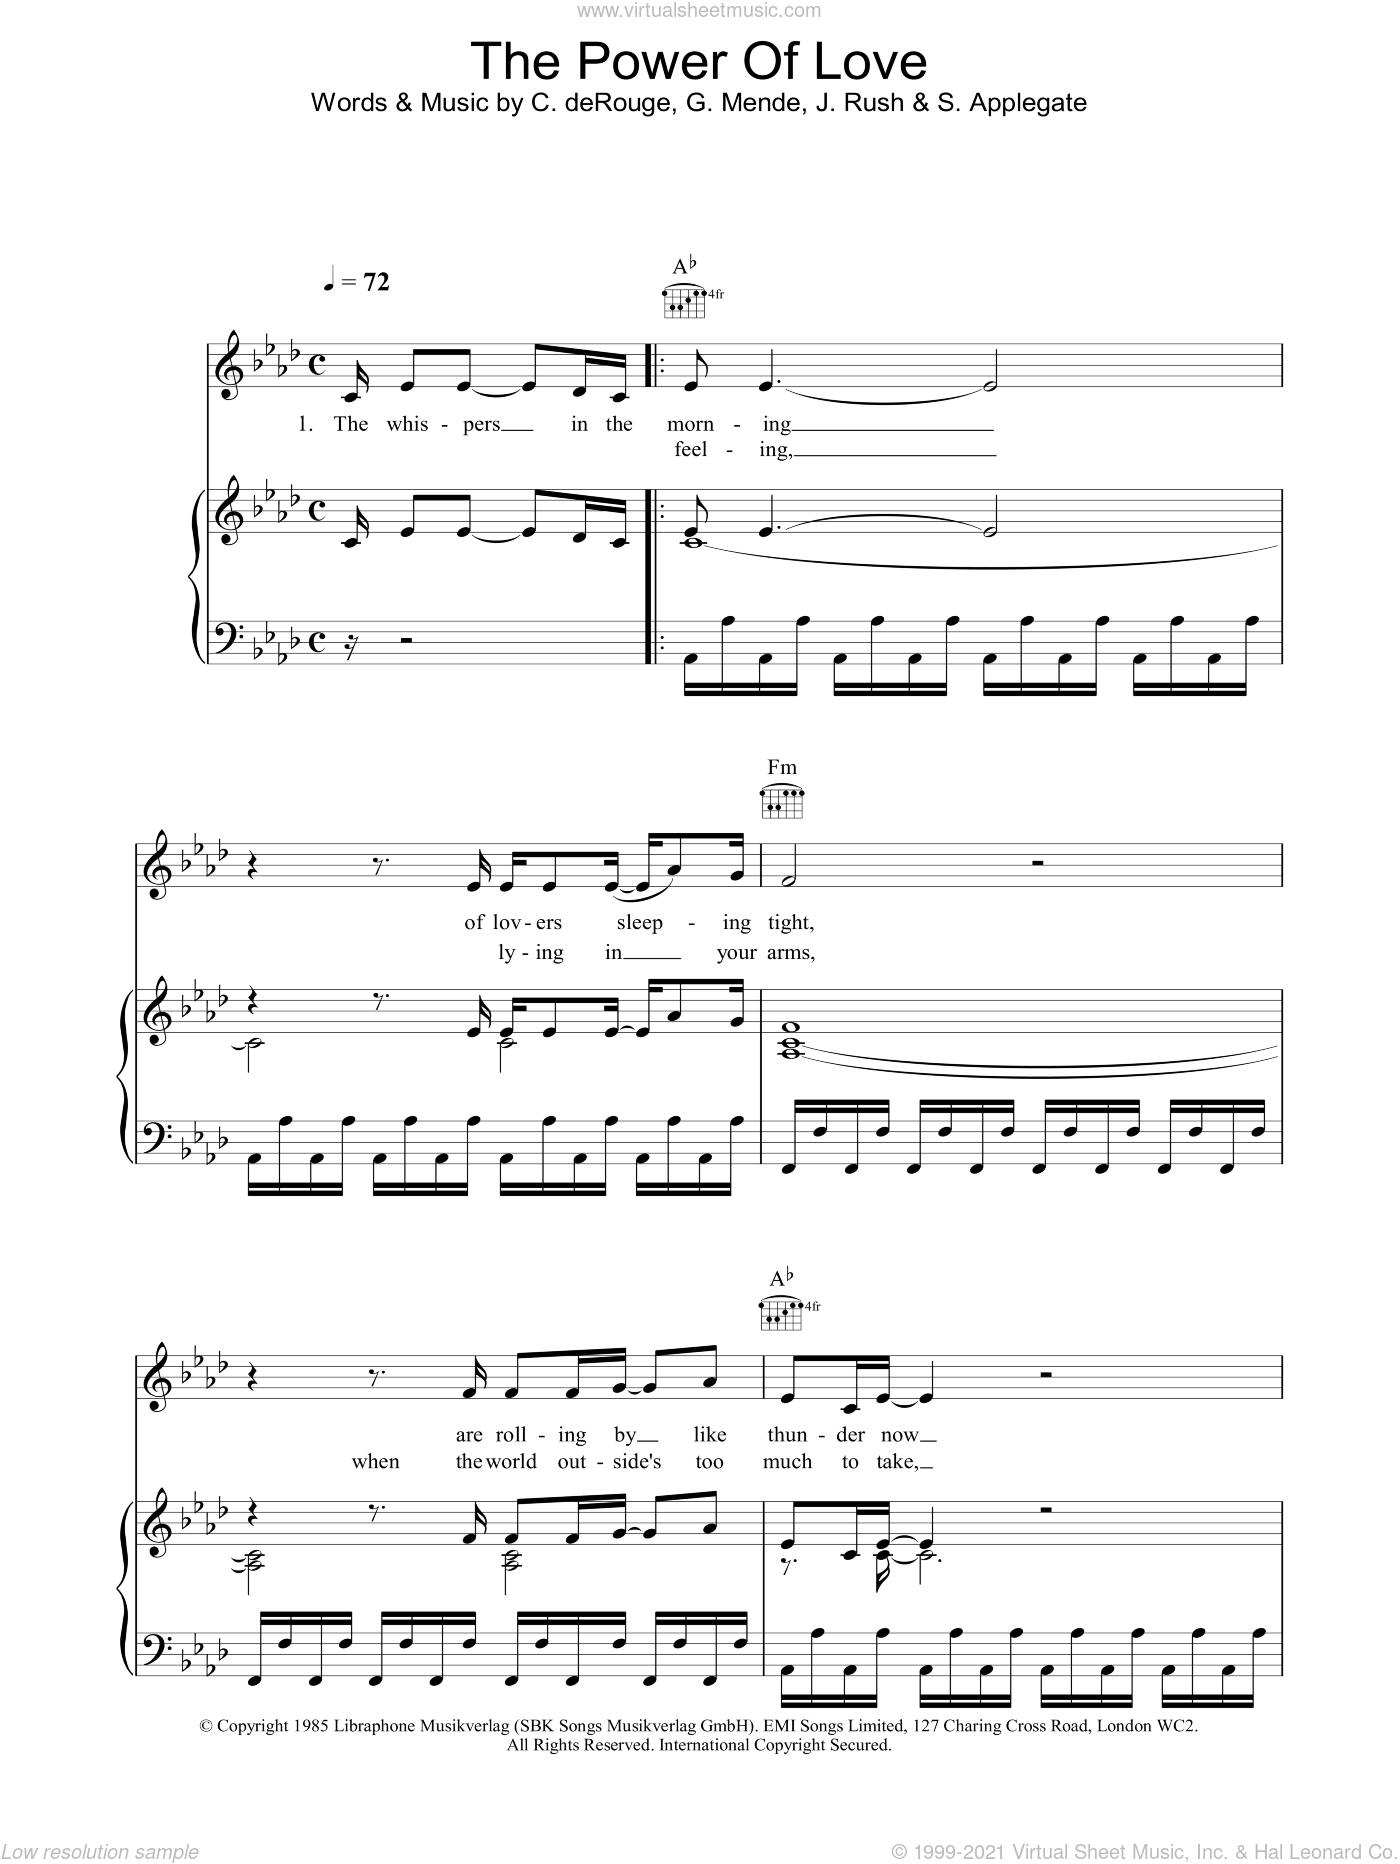 The Power Of Love sheet music for voice, piano or guitar by Mary Susan Applegate